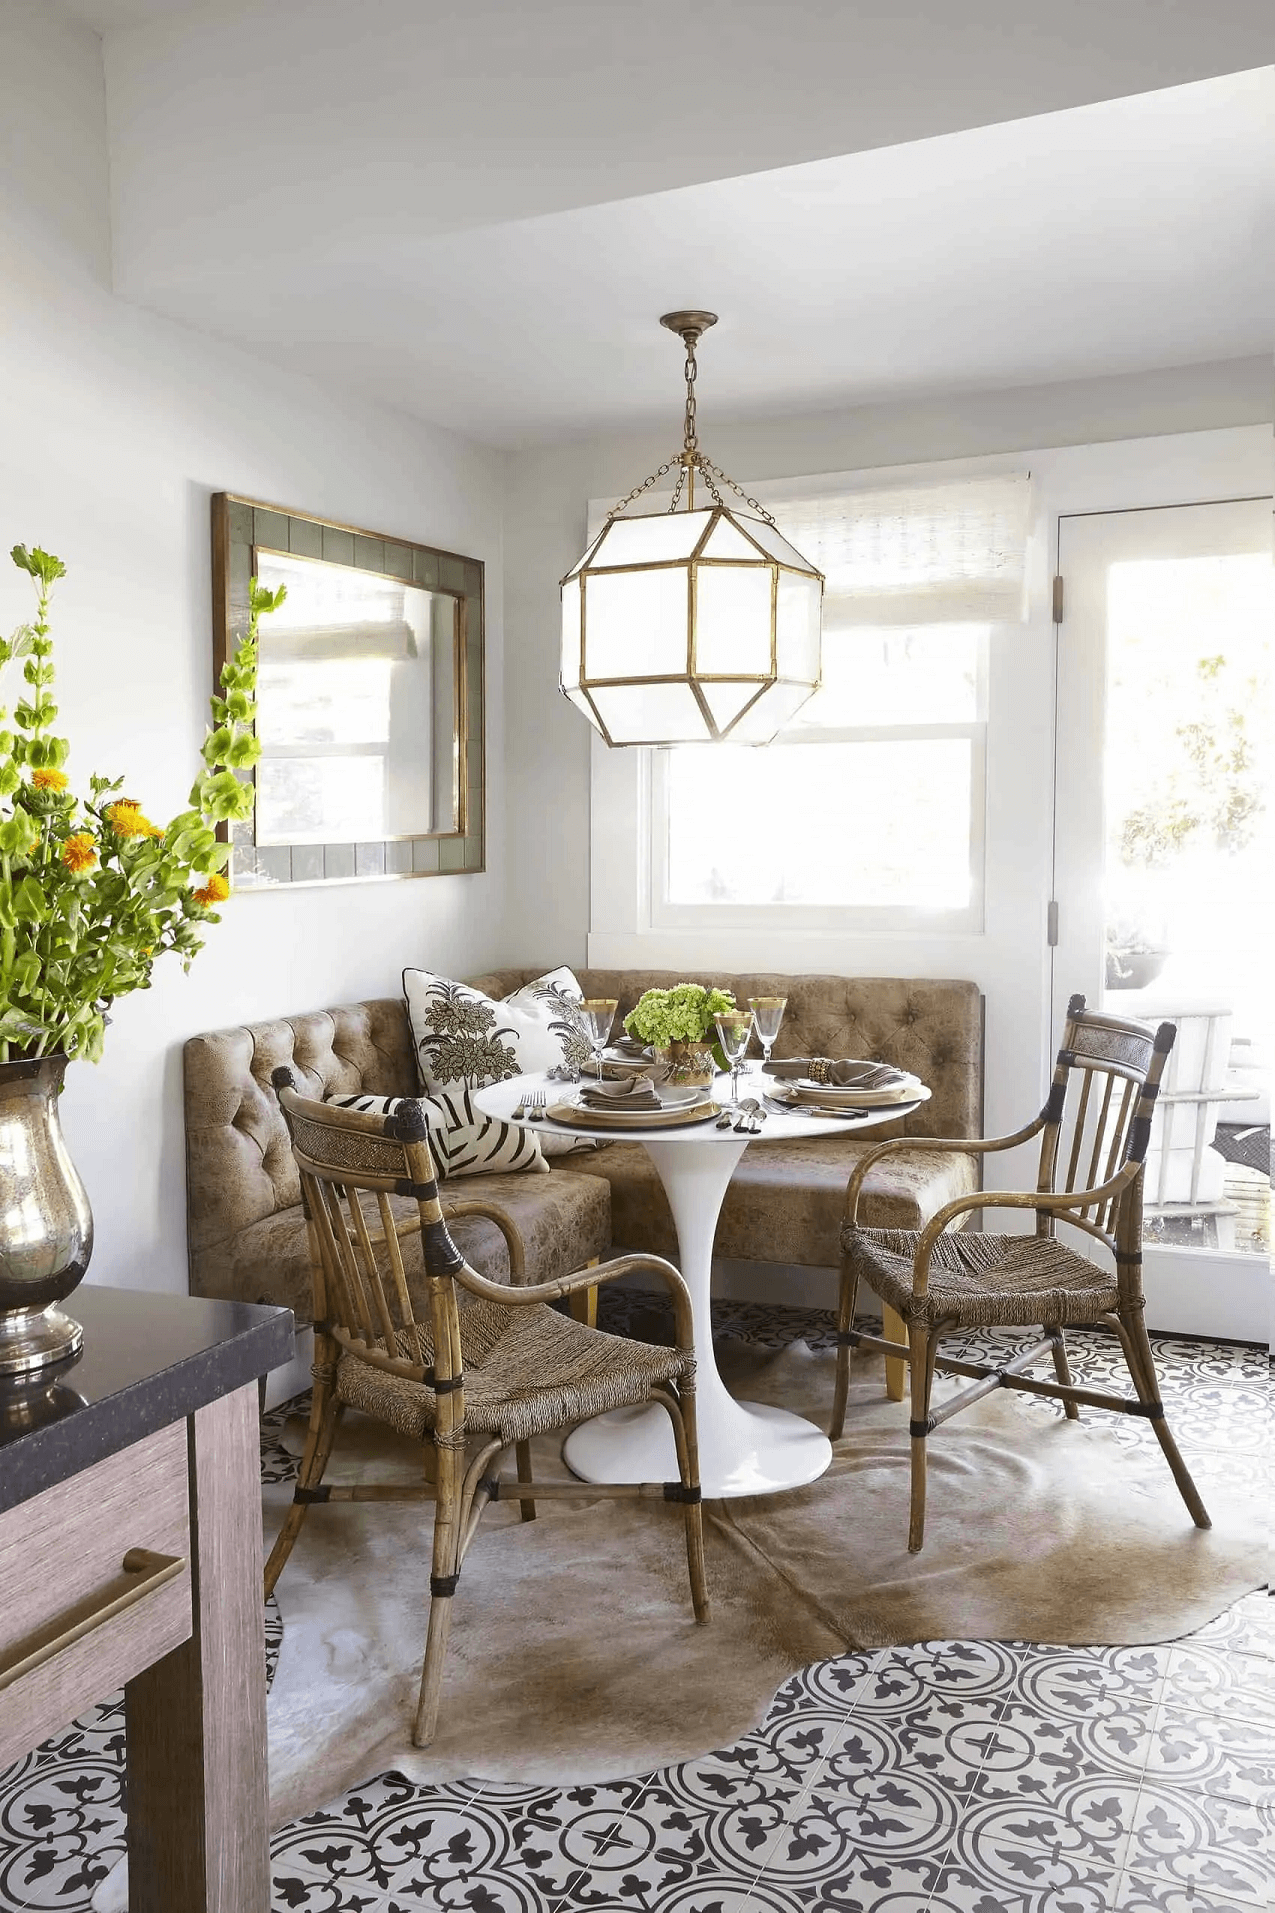 WARM FARMHOUSE DINING ROOM WITH BANQUETTE SEAT SMALL SPACE